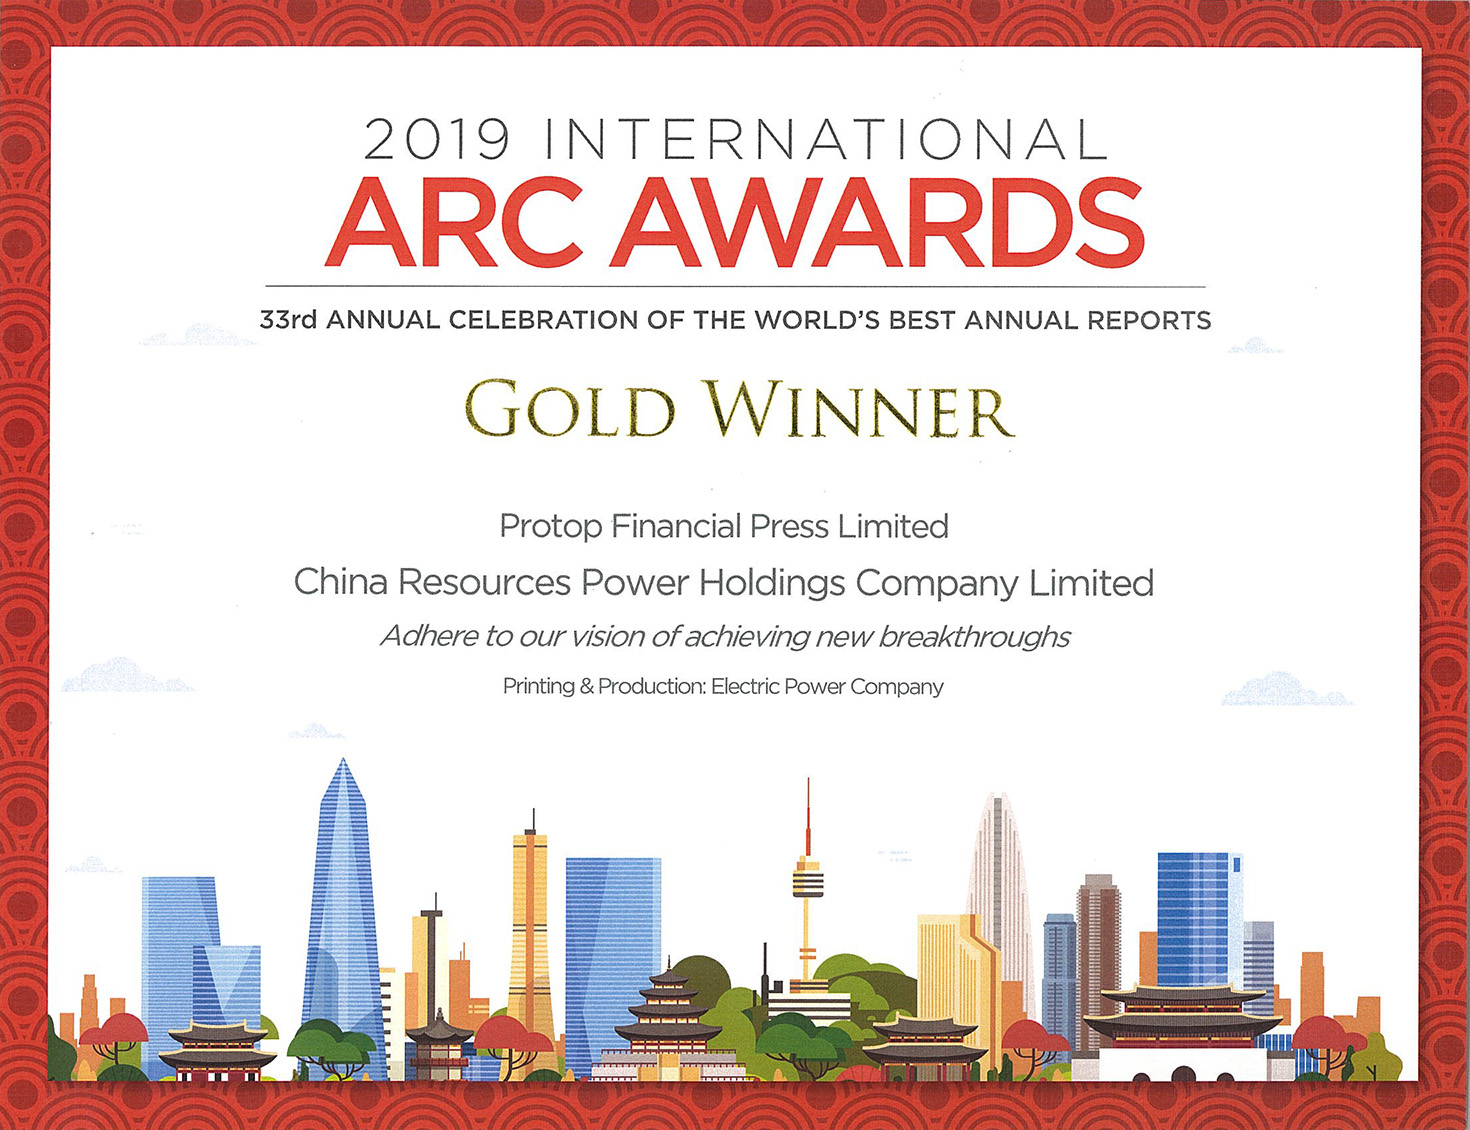 華潤電力控股有限公司 – 2019 ARC AWARDS GOLD WINNER Printing & Production: Electric Power Company